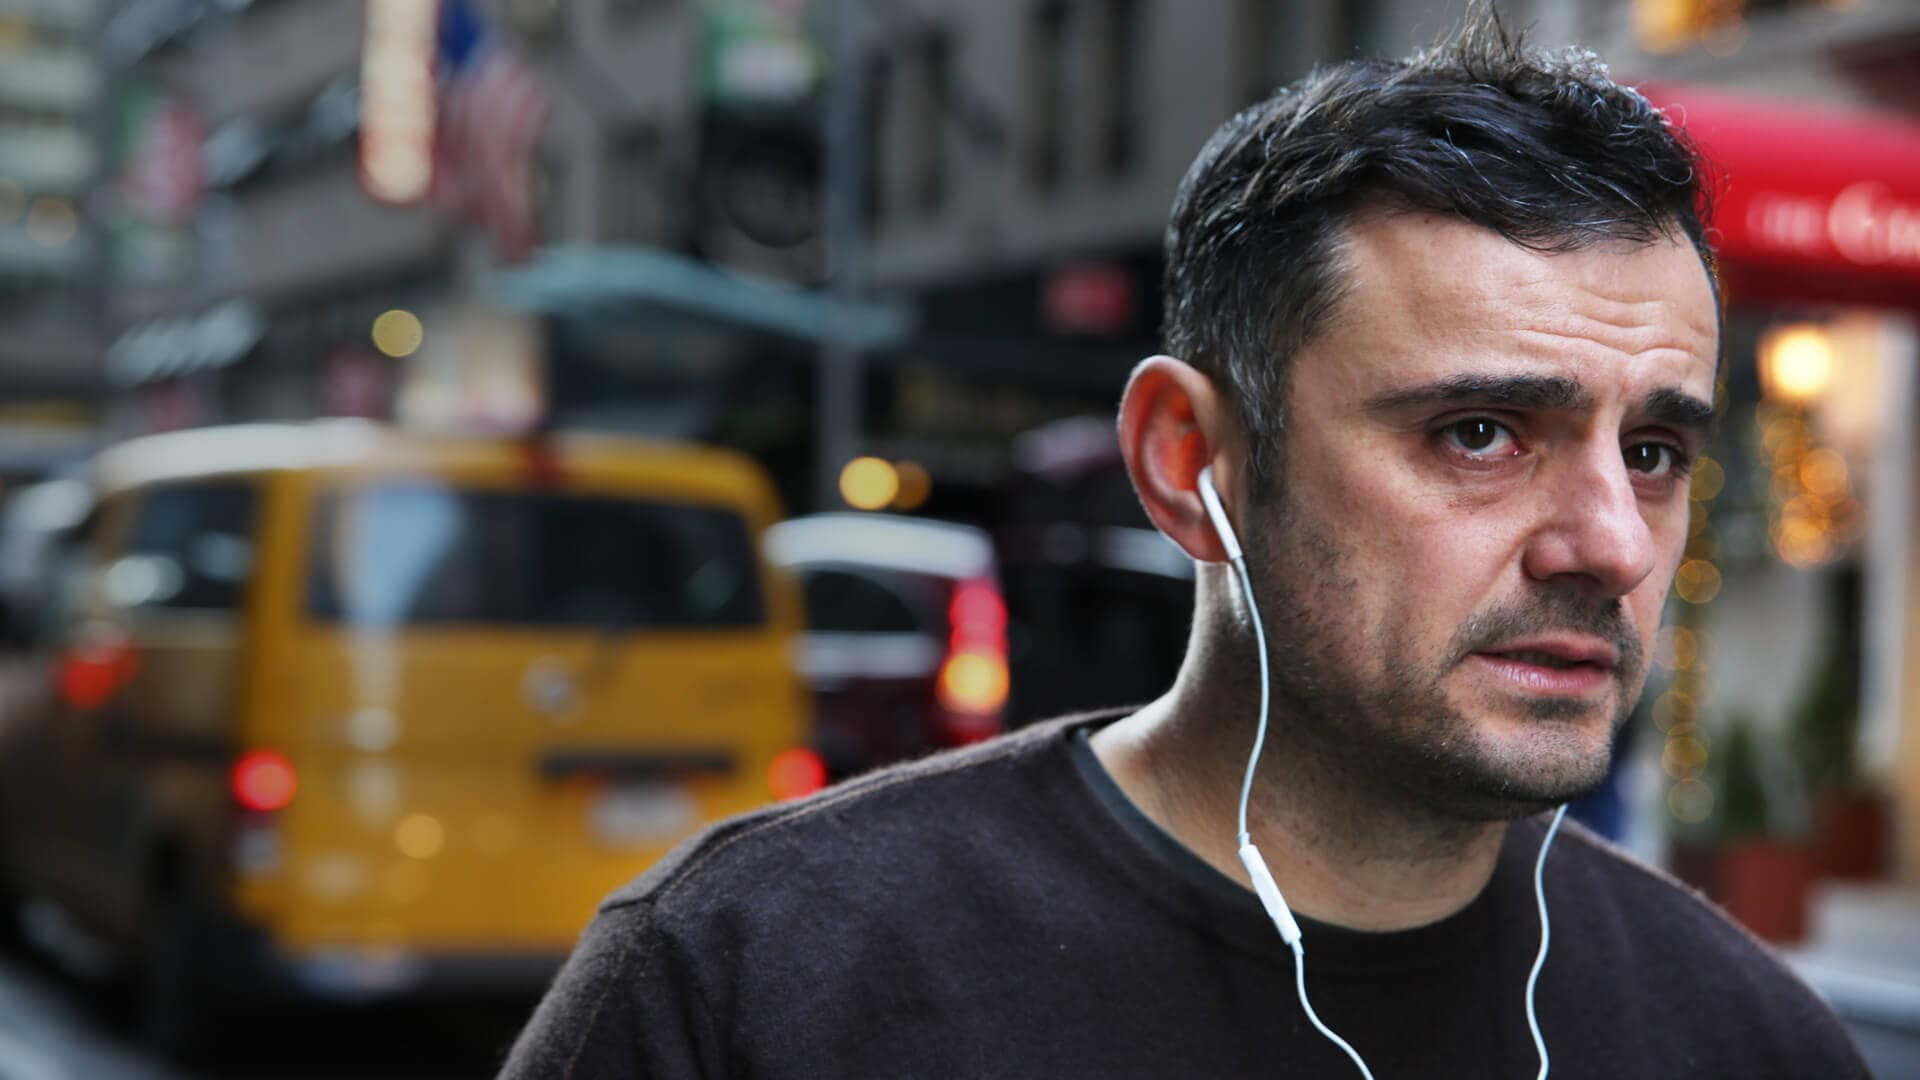 Gary Vaynerchuk in New York